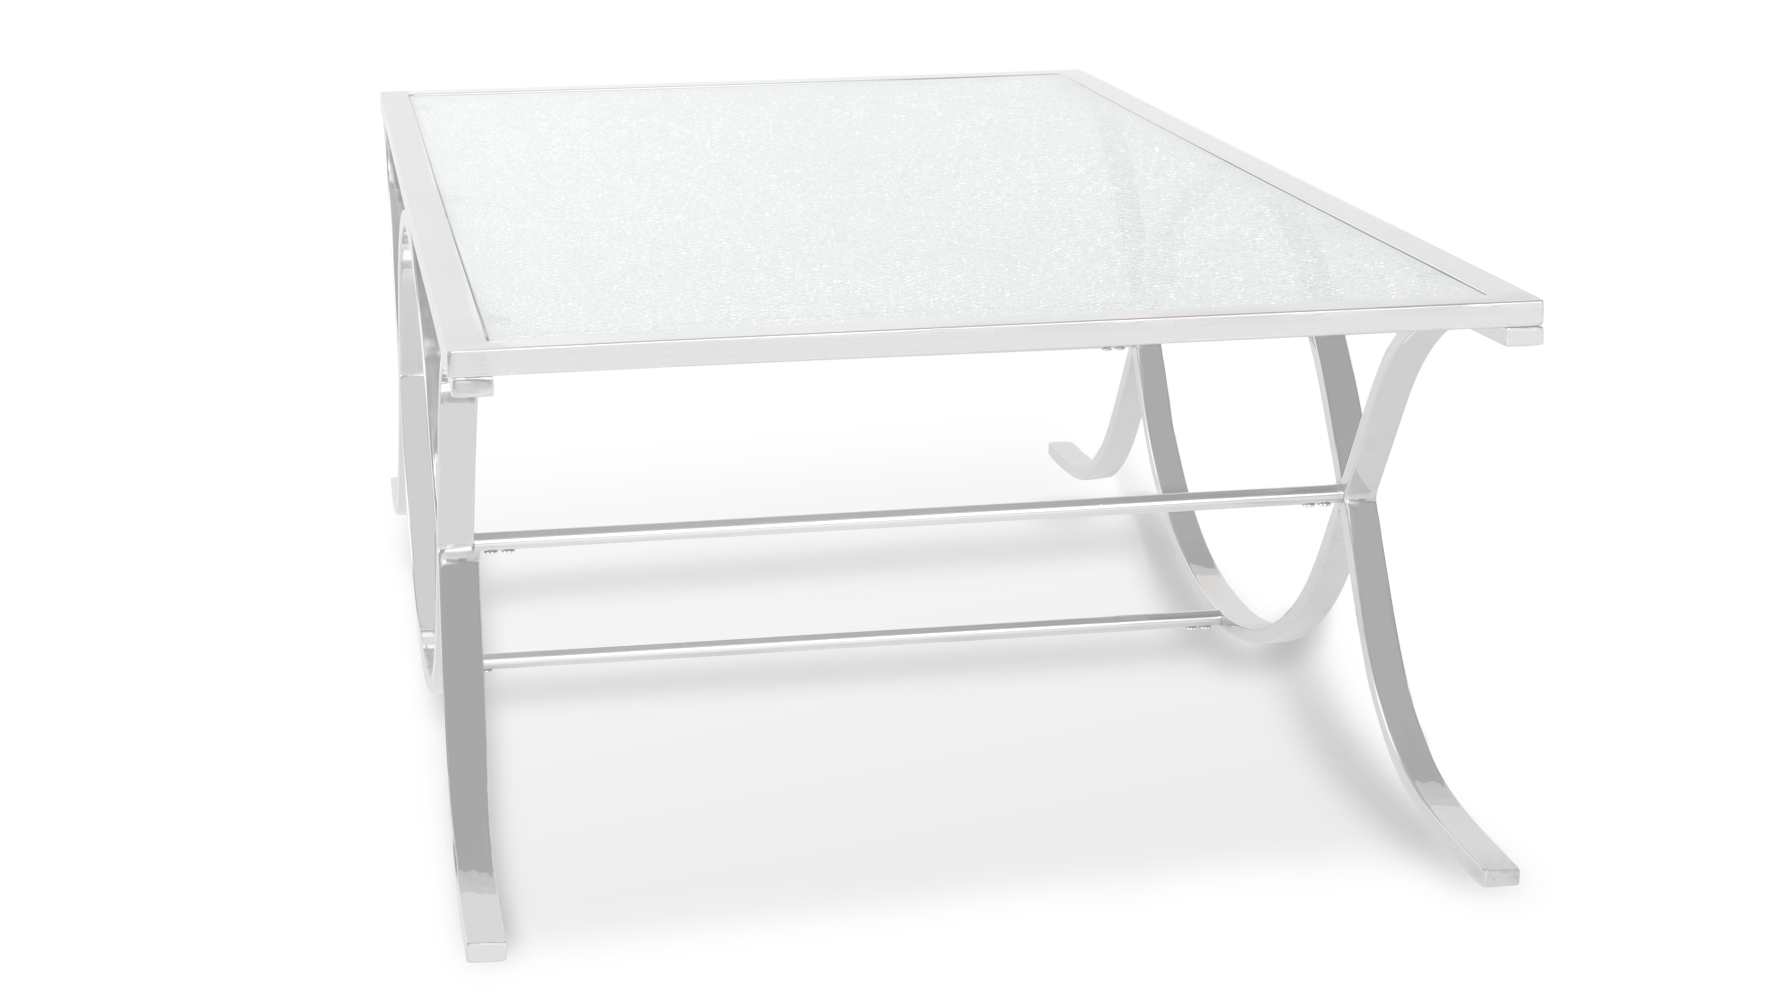 Rigado Cracked Glass Coffee Table With Chrome Base Zuri Furniture